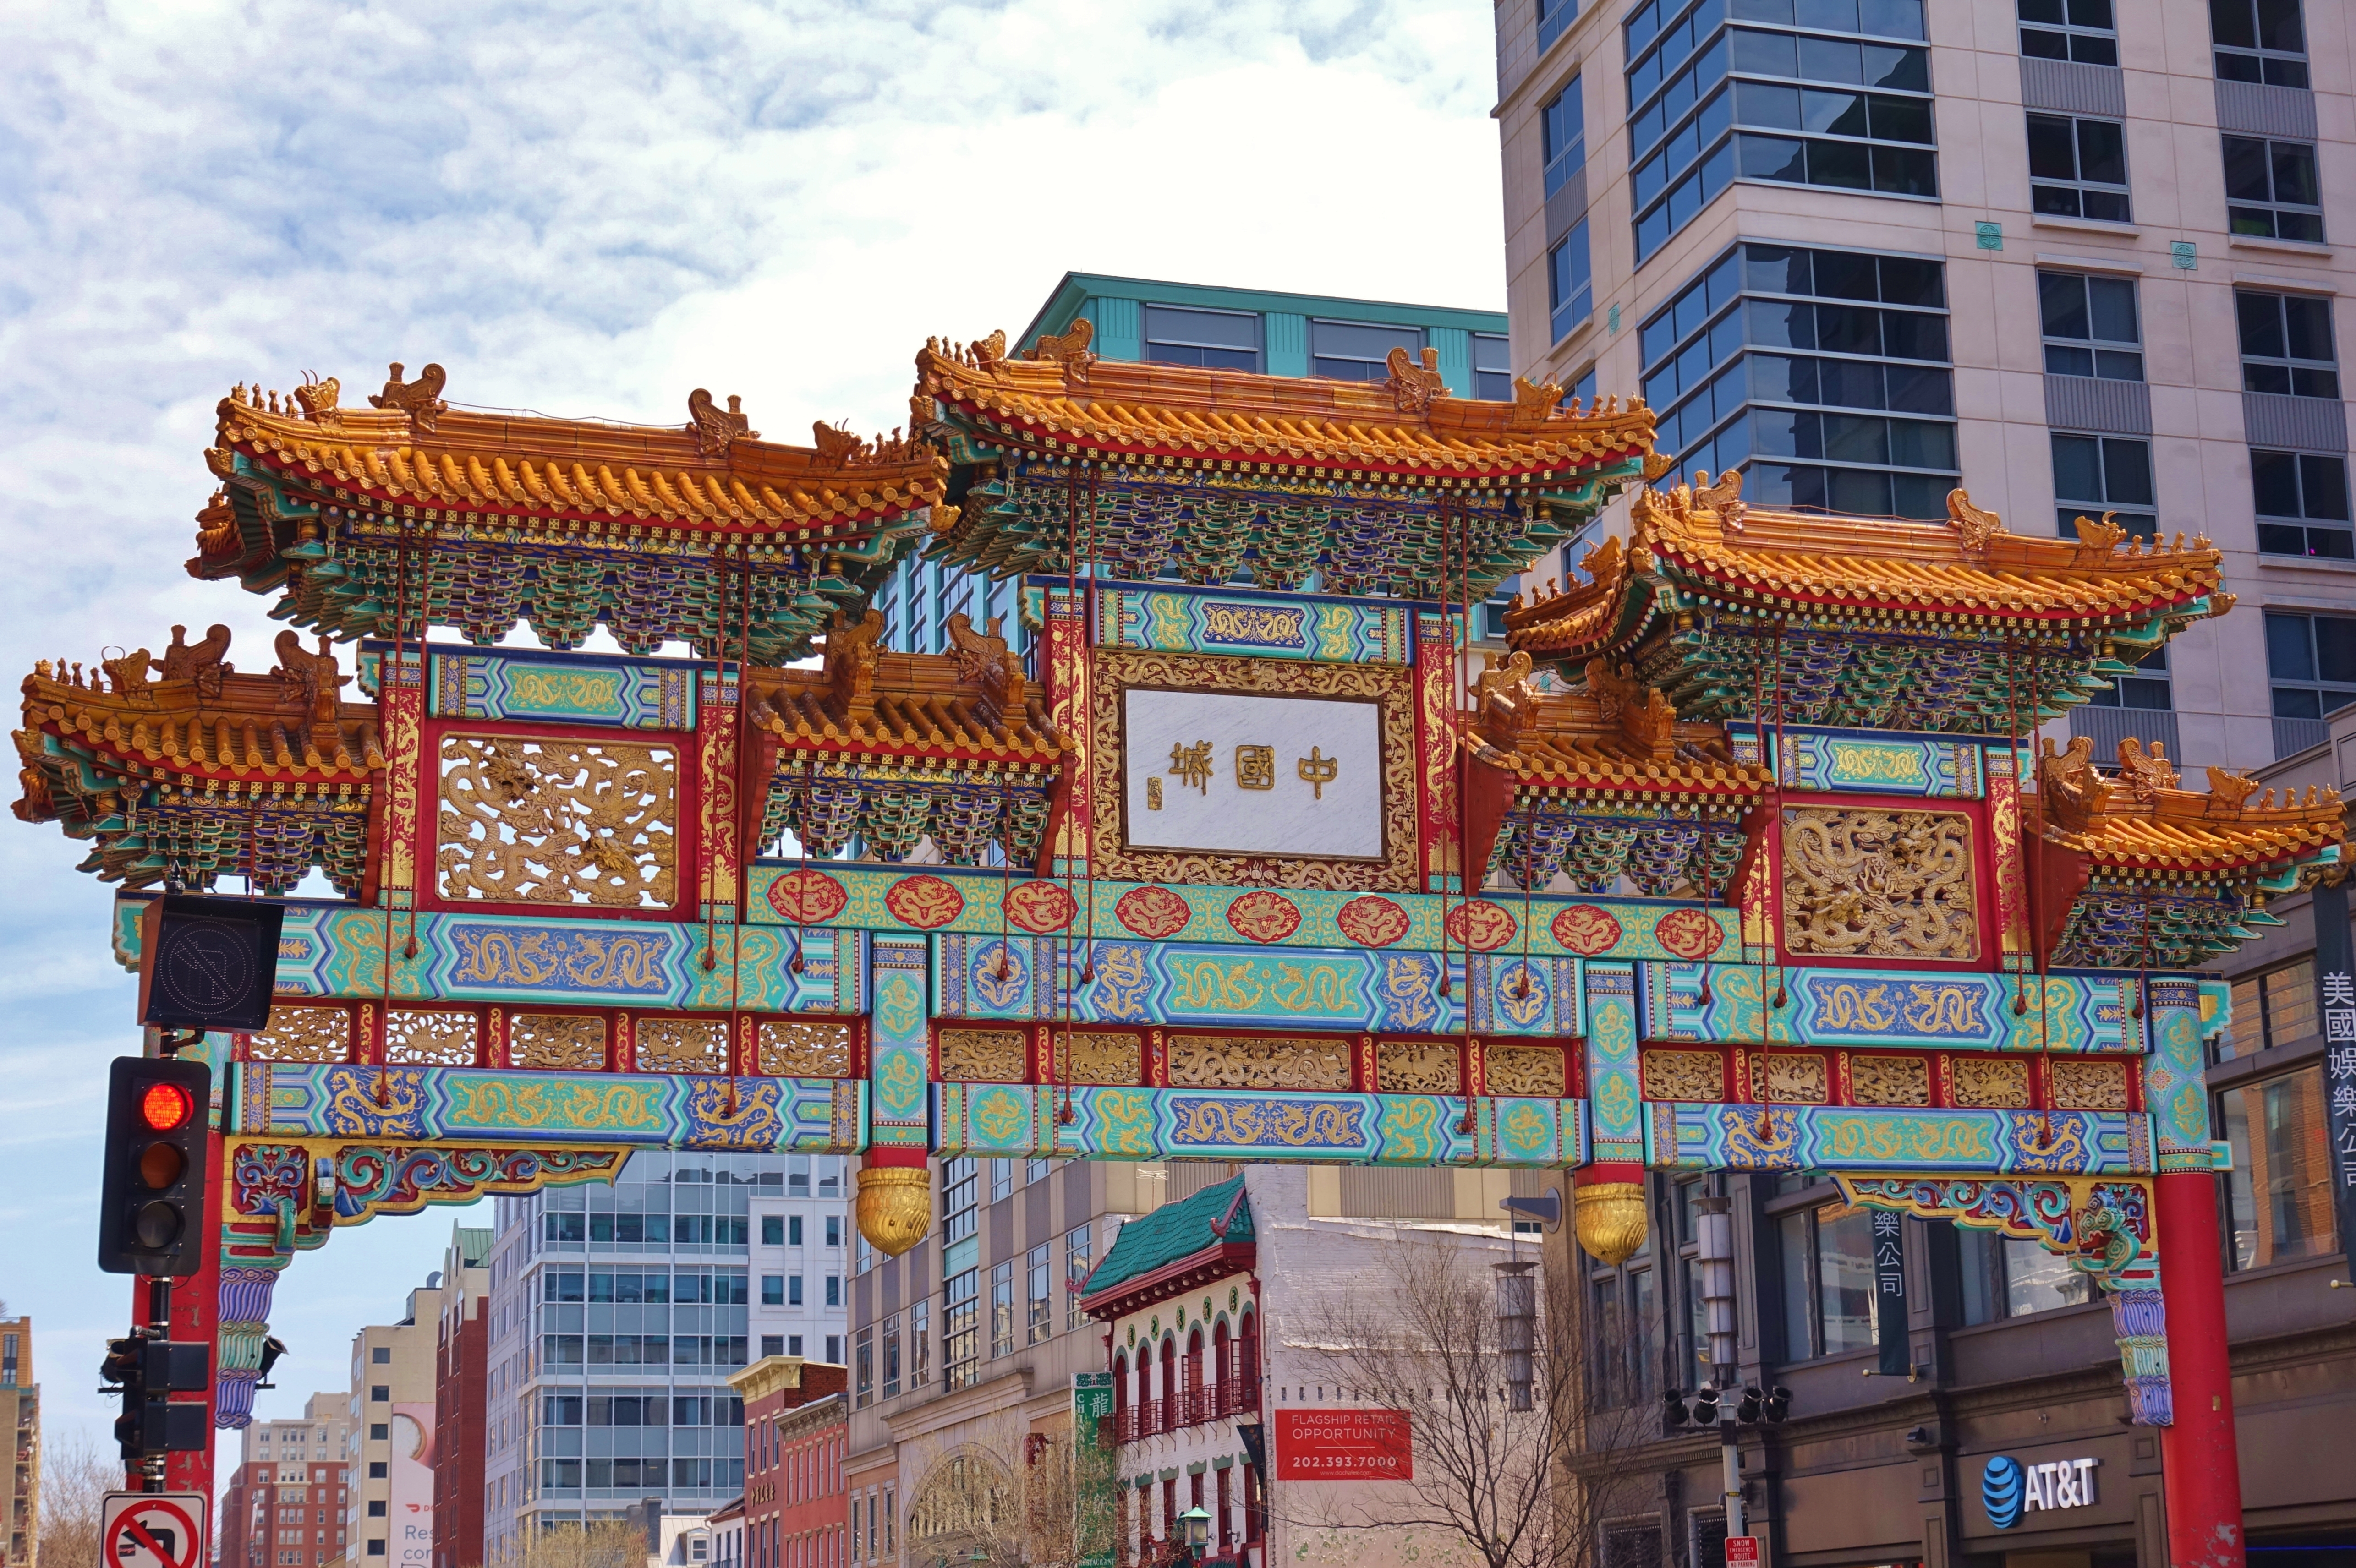 Chinatown's Friendship Archway will be renovated by next October